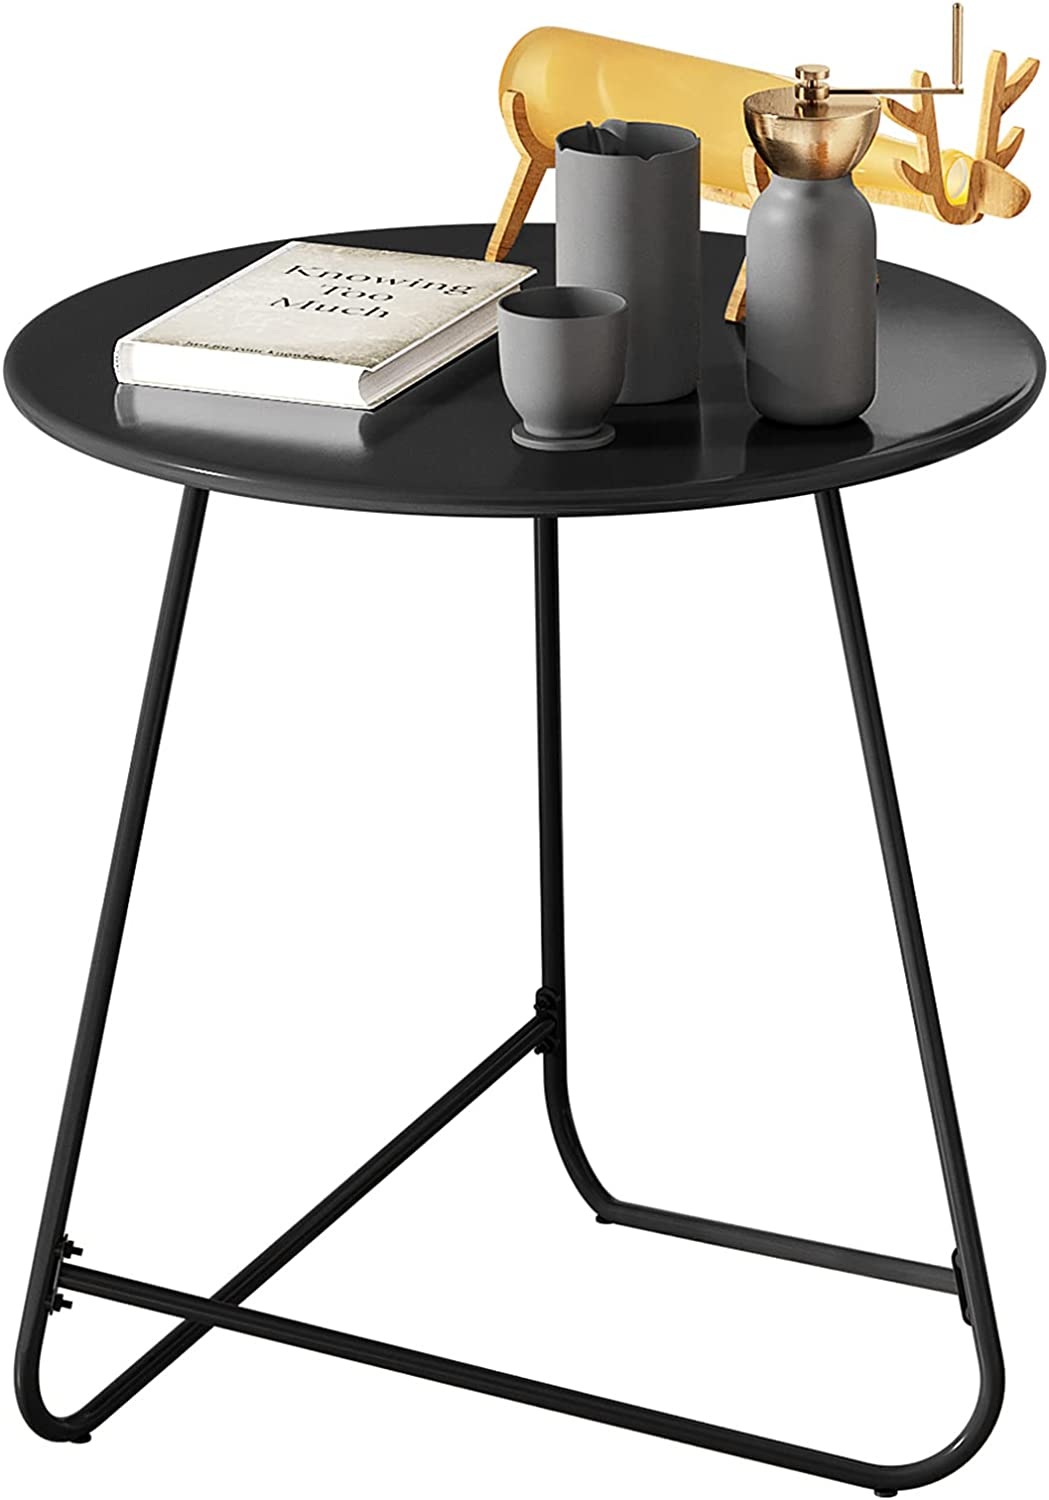 HOMEFORT Round Patio Side Table,Outdoor Snack Table,Anti-Rust Metal End Table, All-Metal Tray Table,17.9- Inch Bedside Table, Indoor Modern Sofa Side Table, Sturdy Metal Frame (Black)